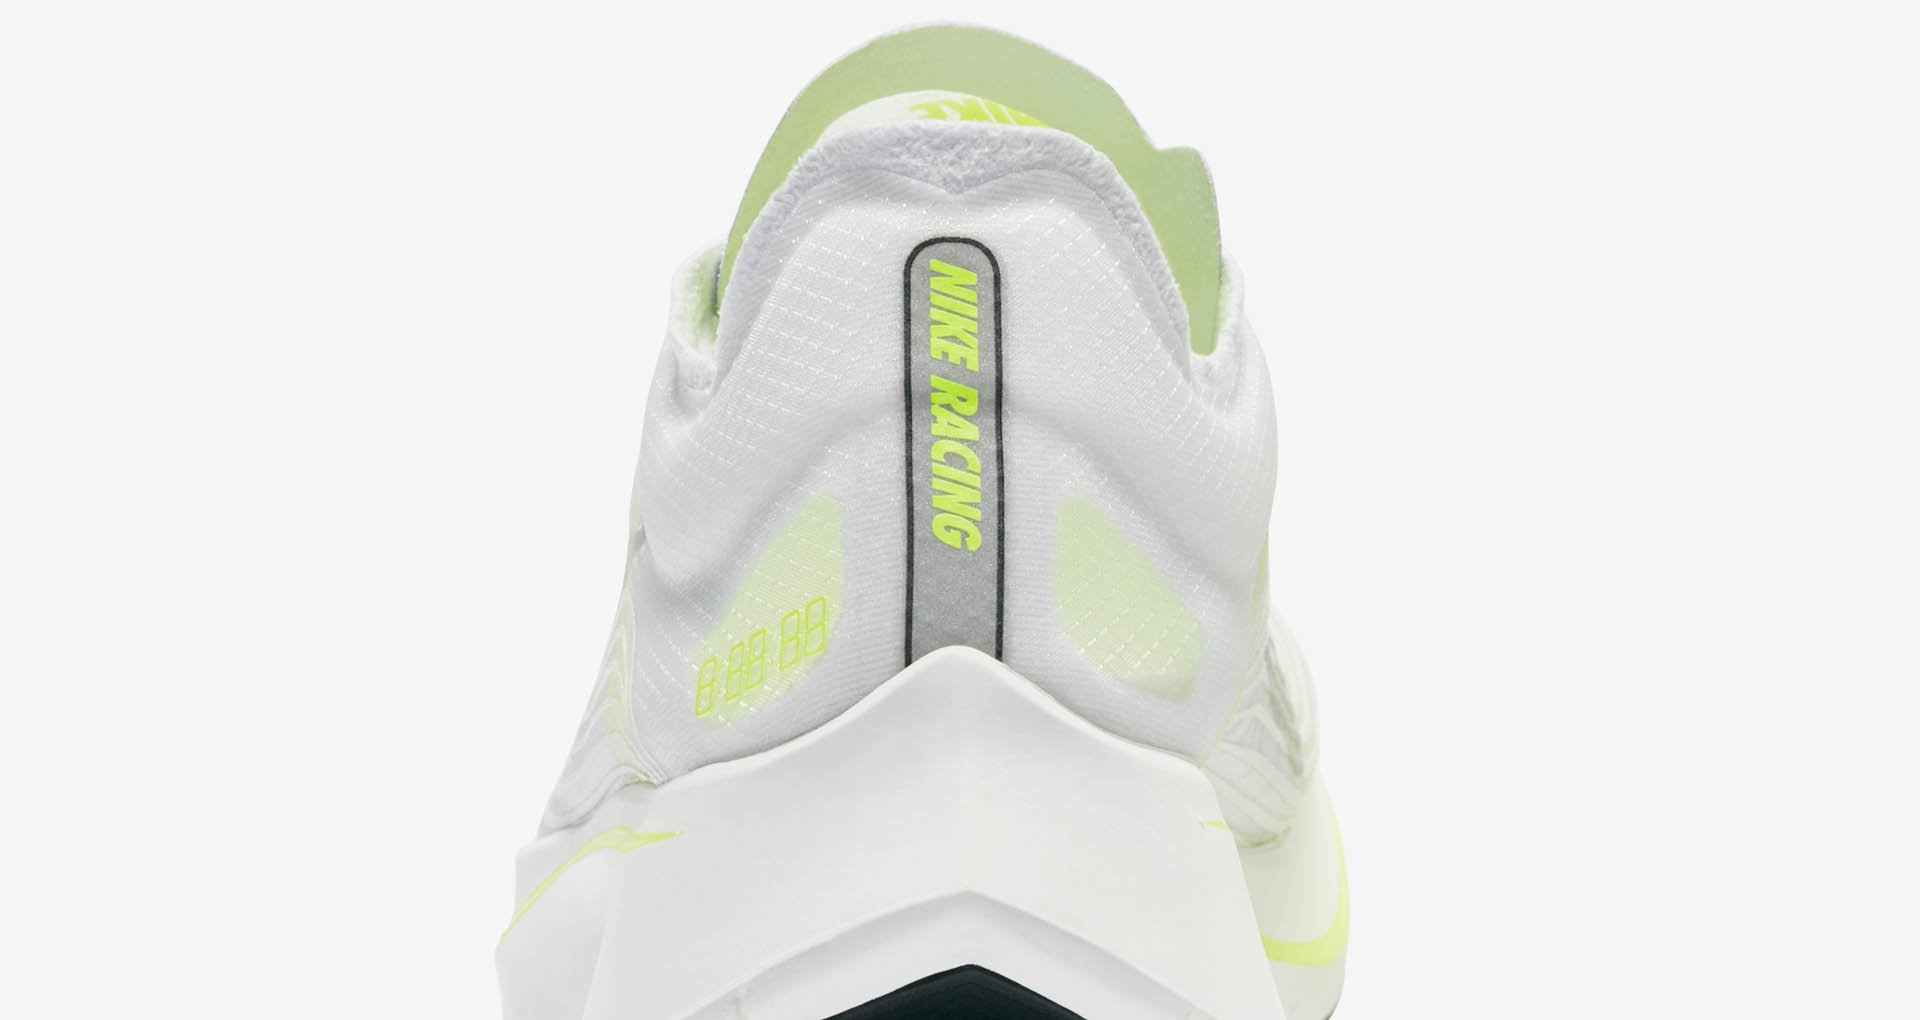 nike-zoom-fly-sp-white-volt-glow-aj9282-107-release-20180524